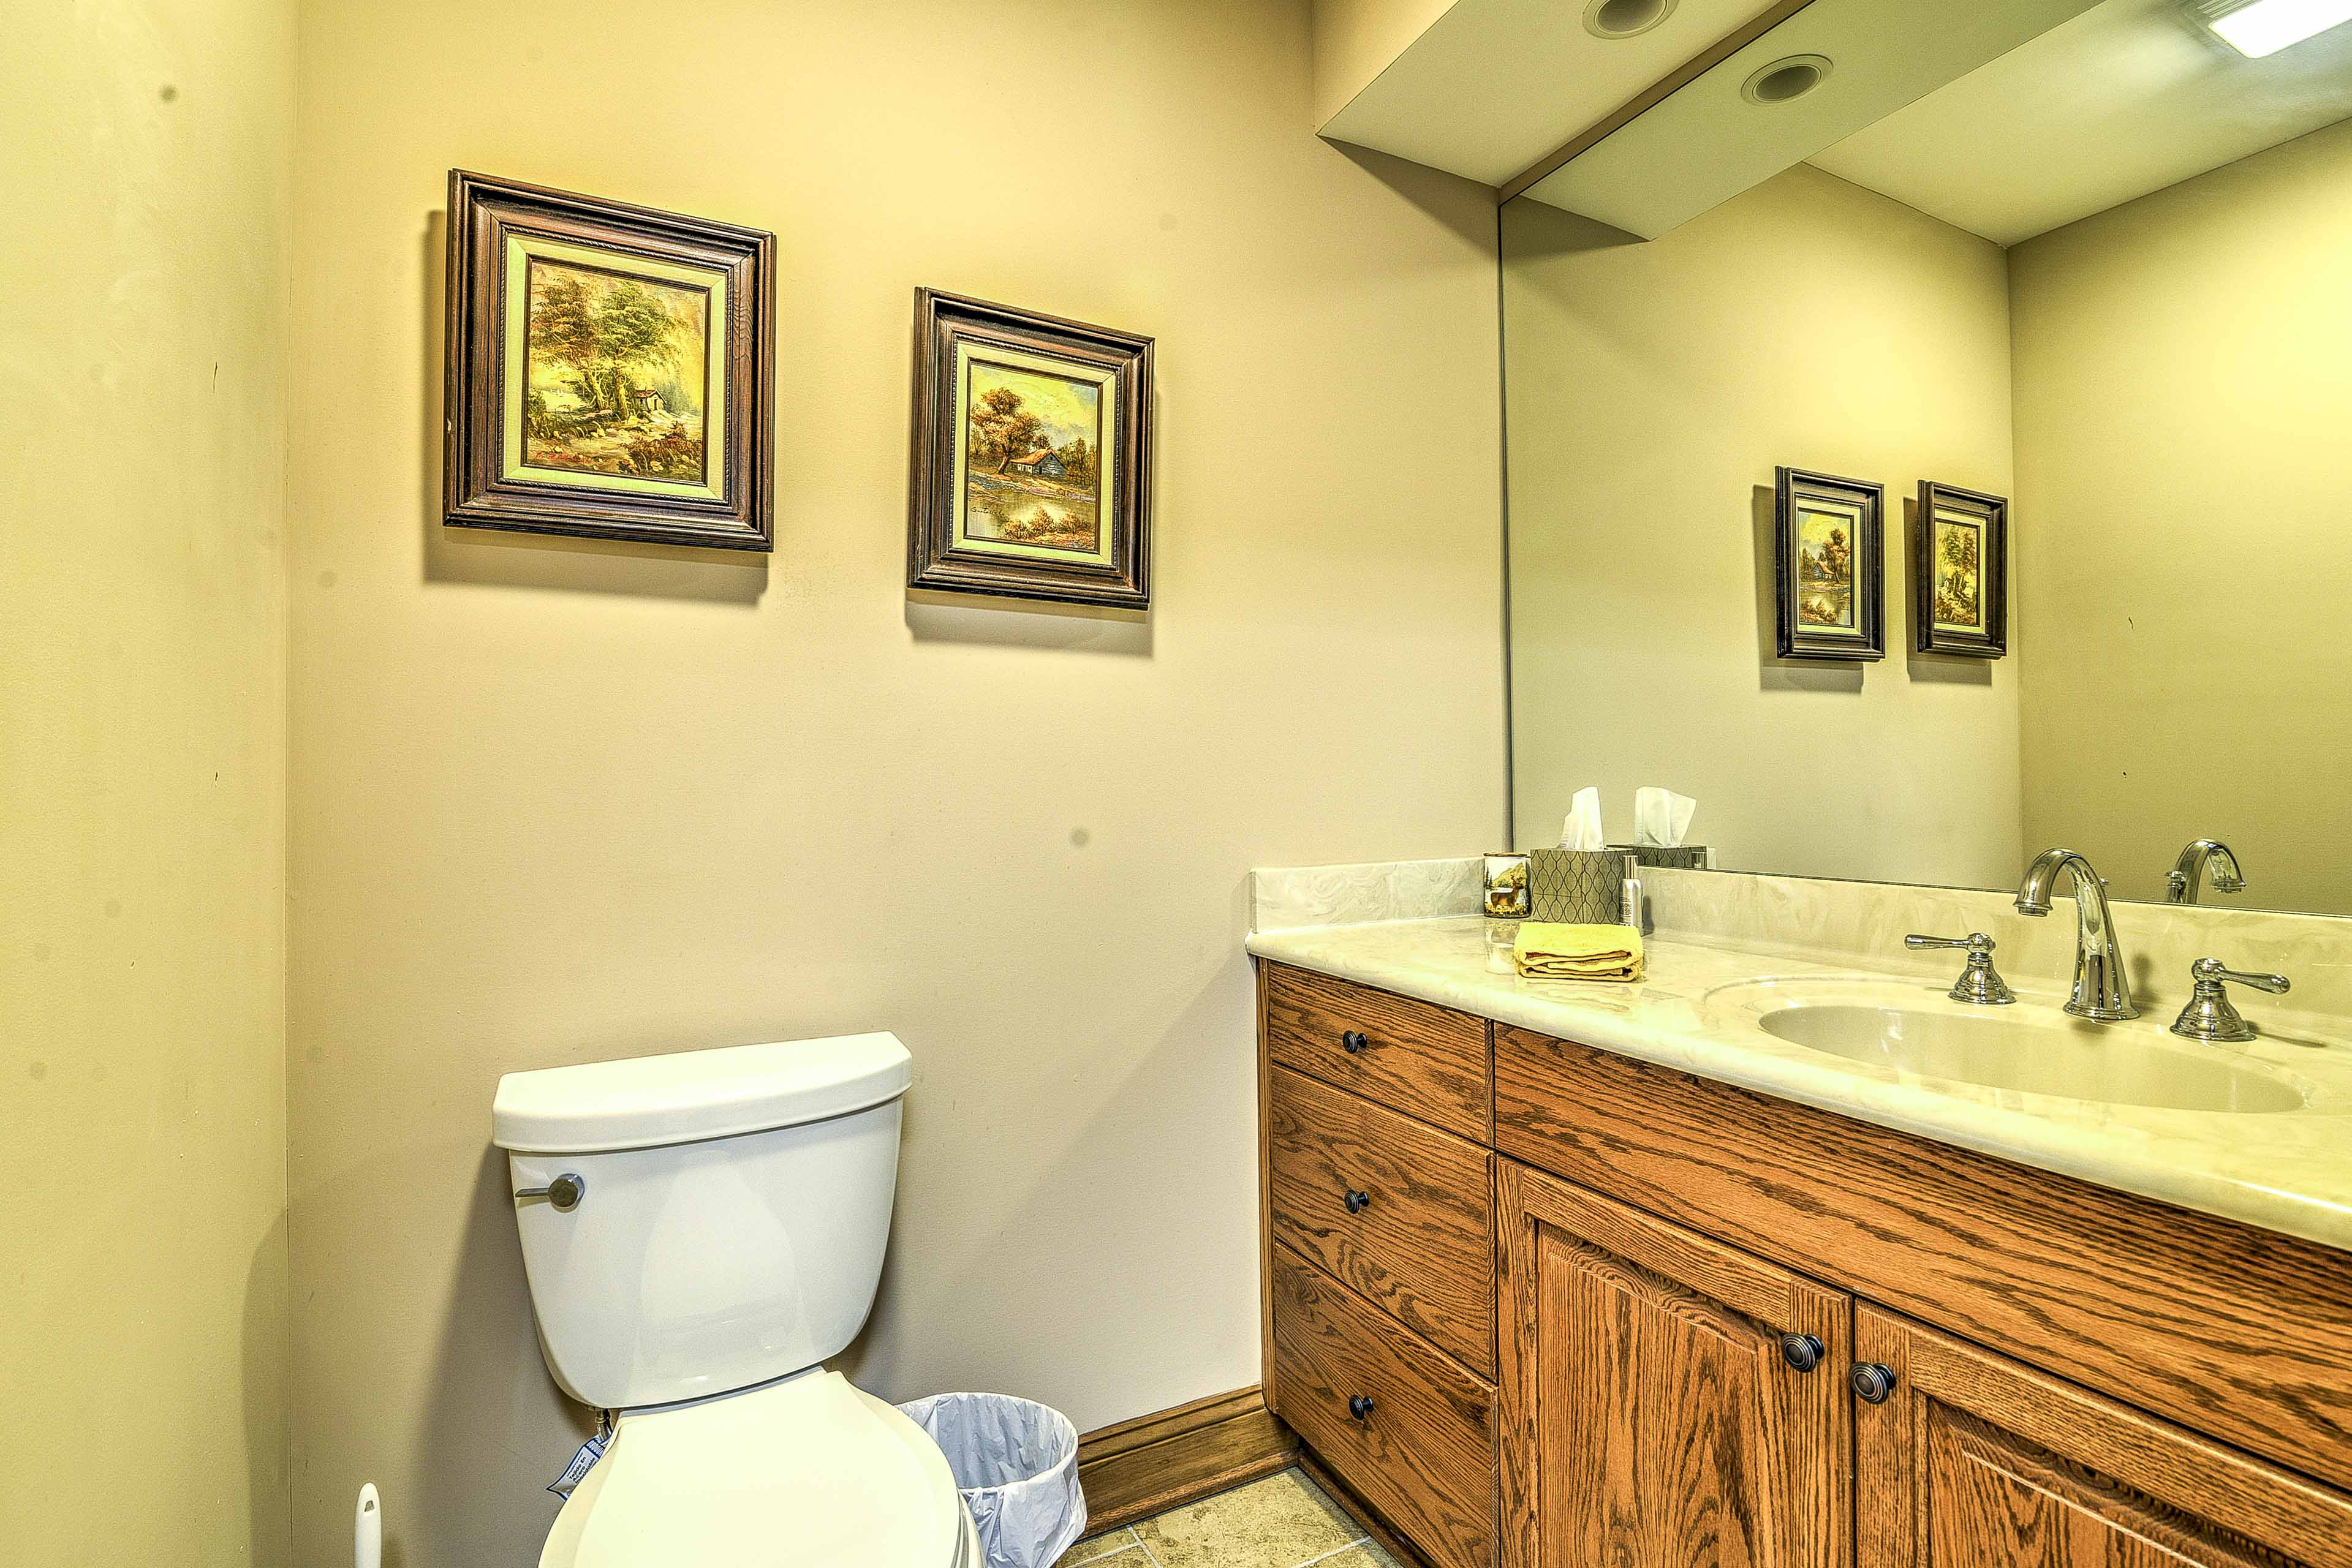 Primp for a night on the town in this pristine bathroom.